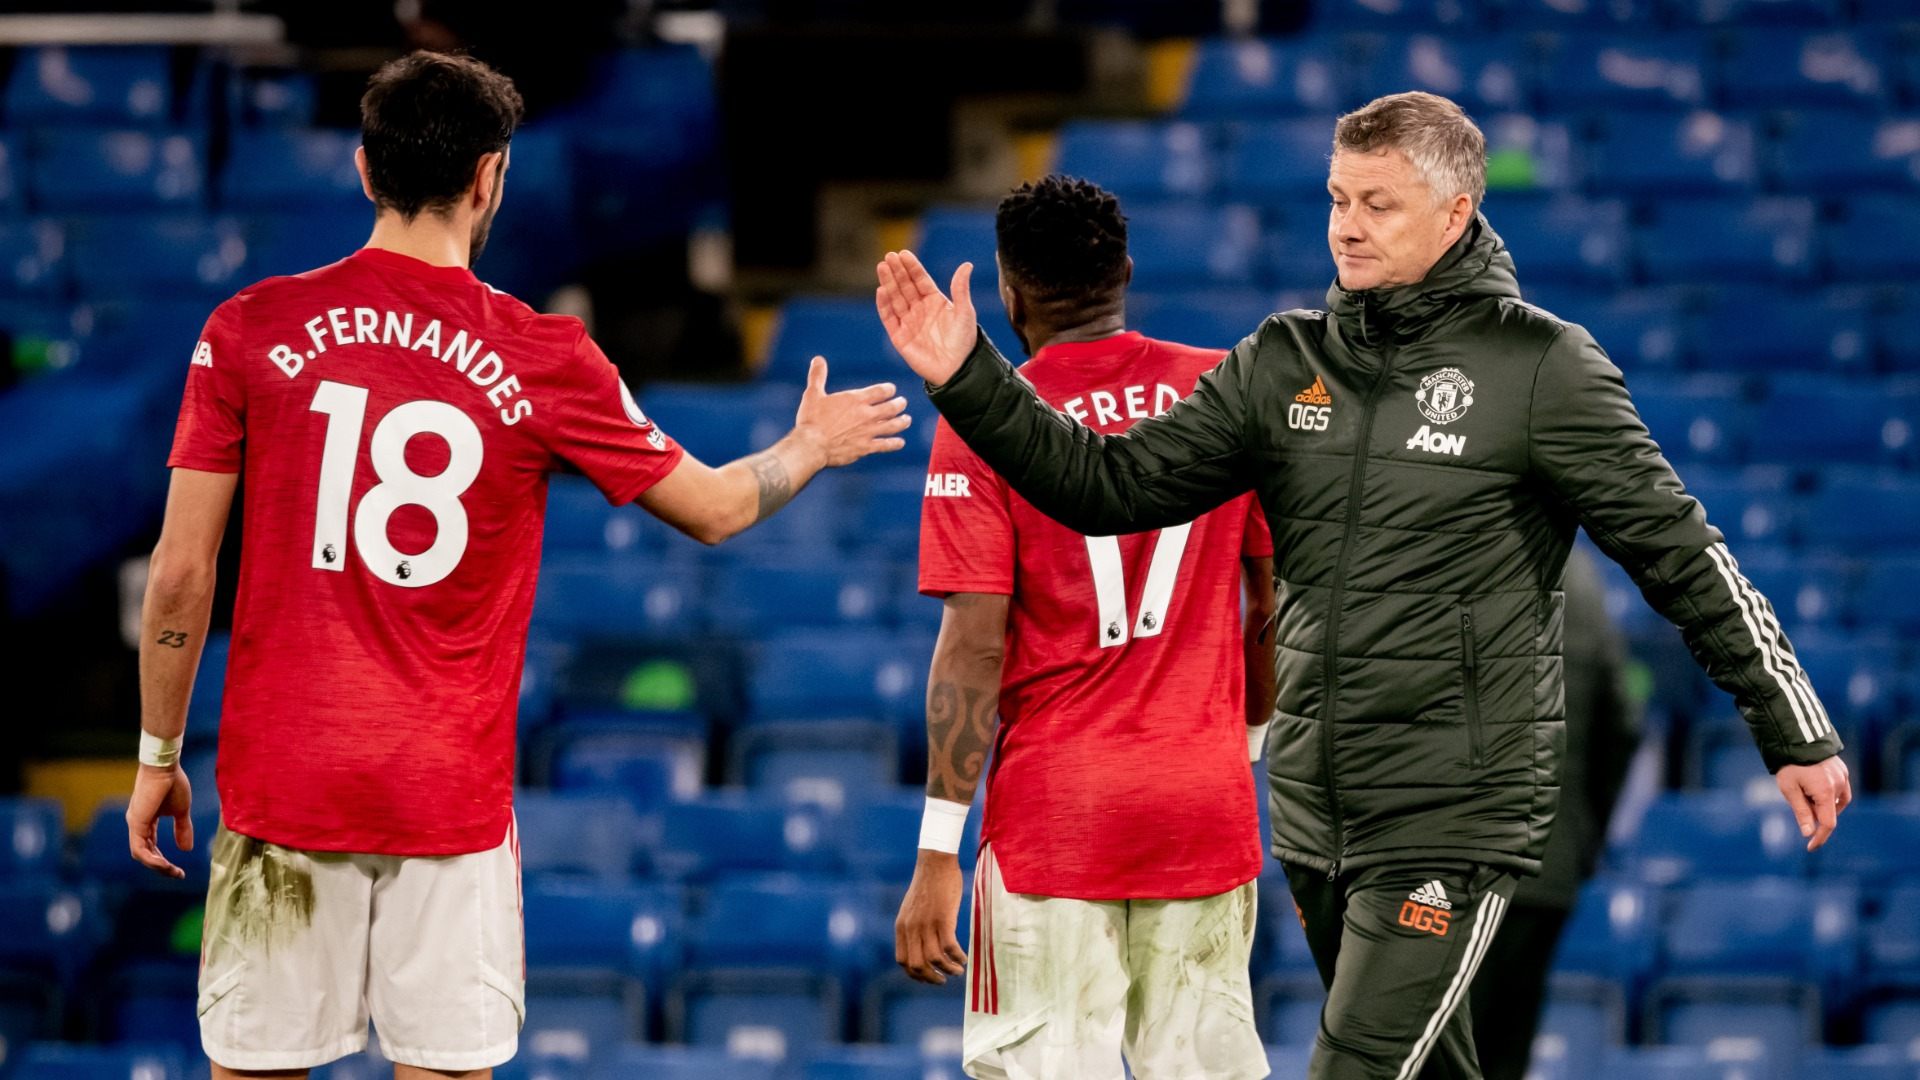 Solskjaer frustrated by forwards as Man Utd's woeful 'big six' run continues